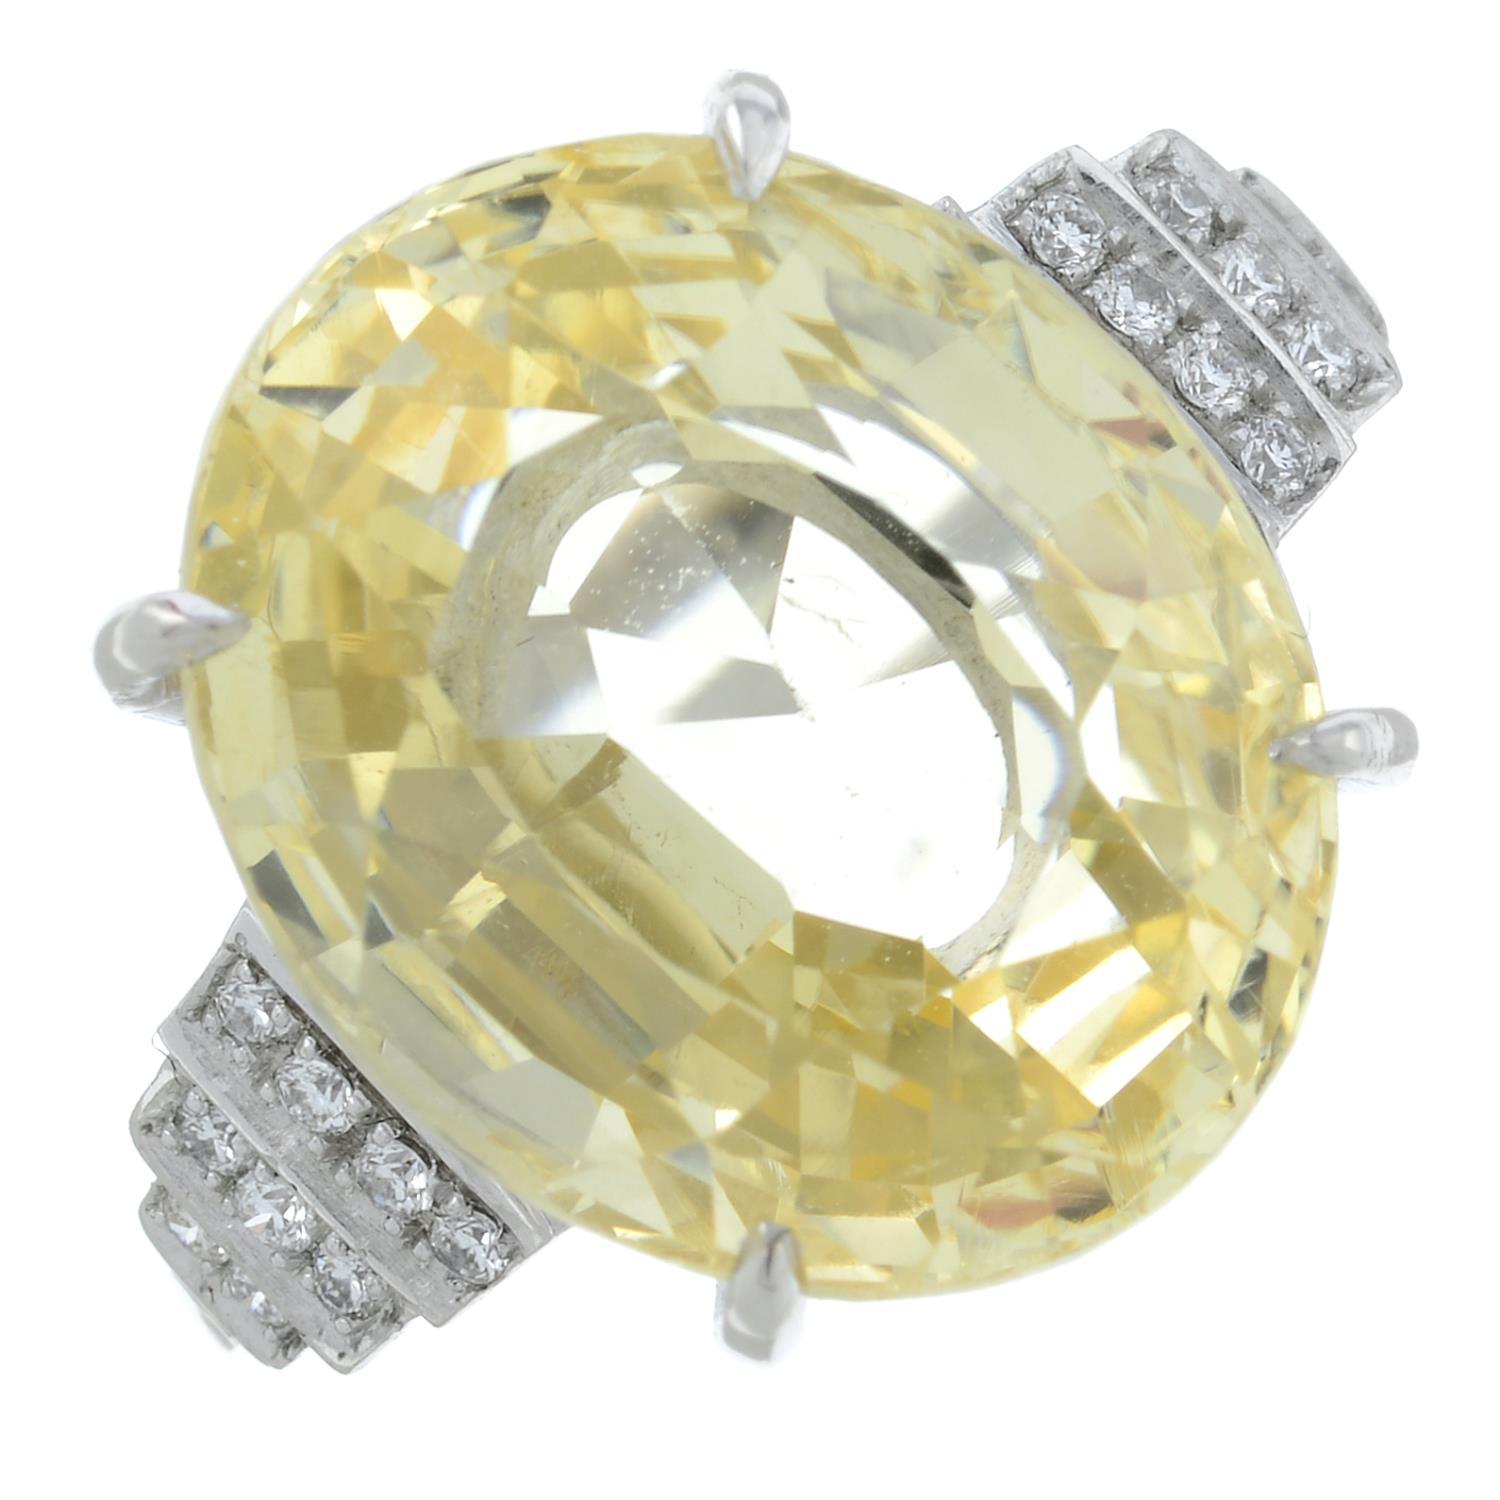 A yellow sapphire and diamond ring.Sapphire weight 15.31cts.Estimated total diamond weight 0.10ct, - Image 2 of 6